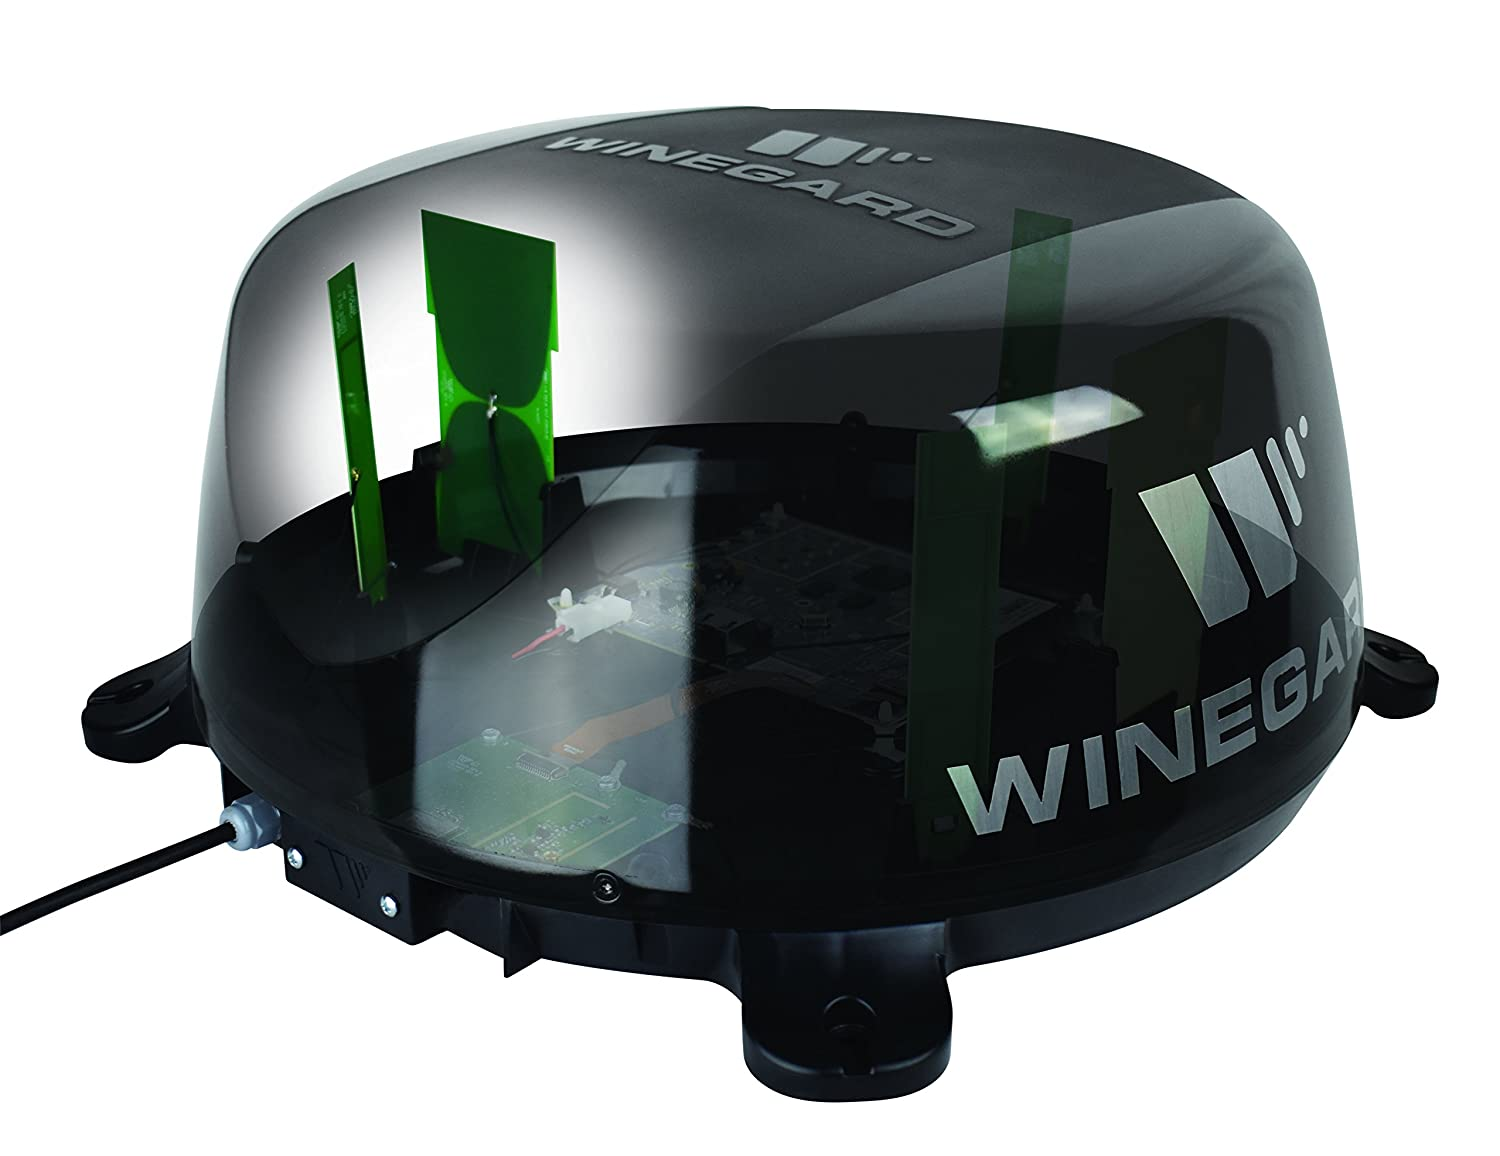 Wi-Fi Extender for RVs Winegard Connect 2.0 WF2 WF2-335